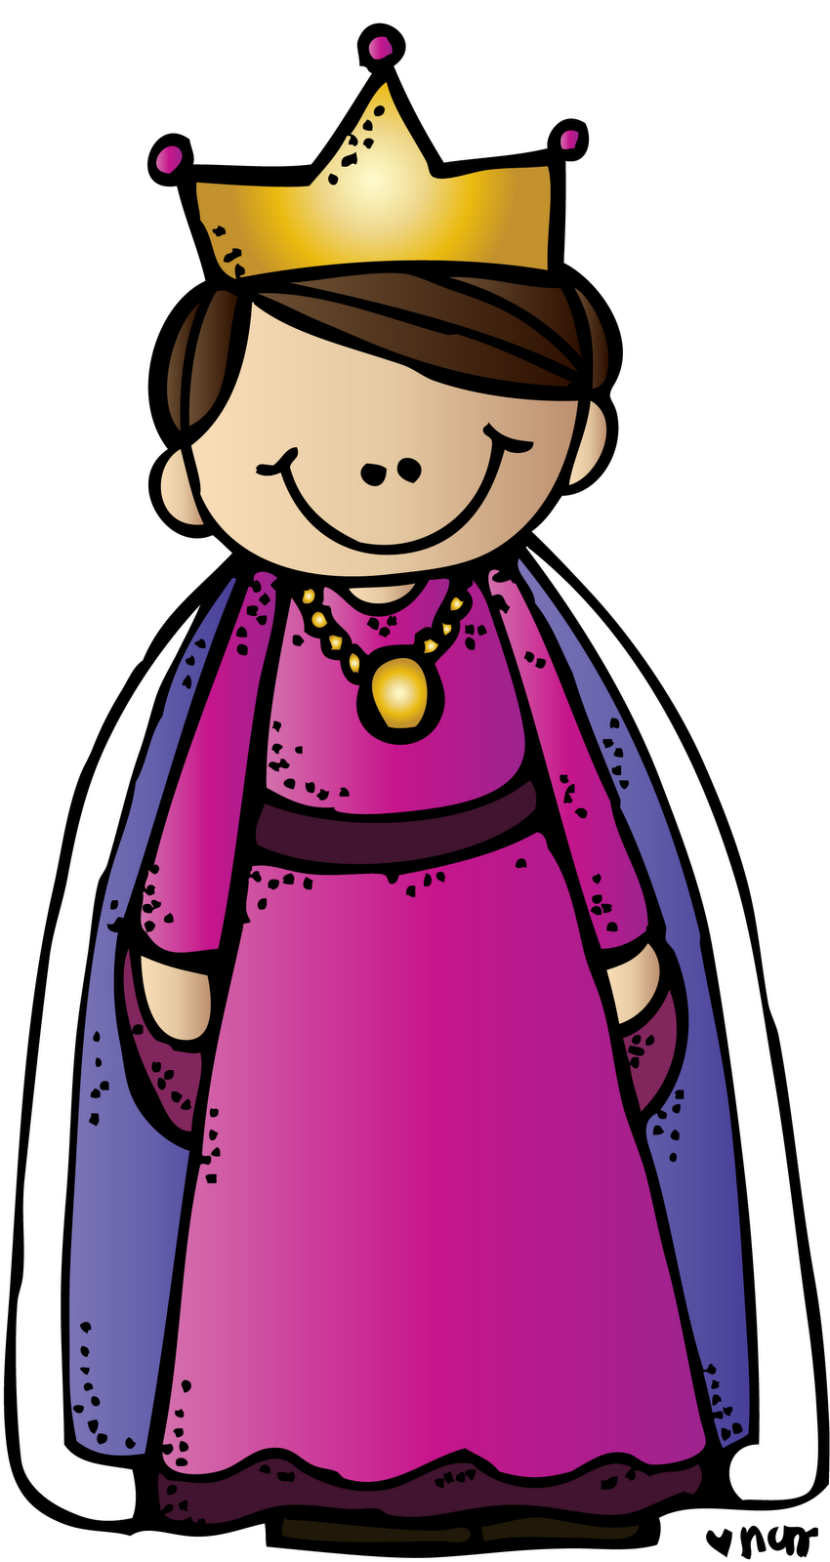 Homecoming crown clipart clipart download Pin by Amy Woodrum on Princess Party | Pinterest clipart download